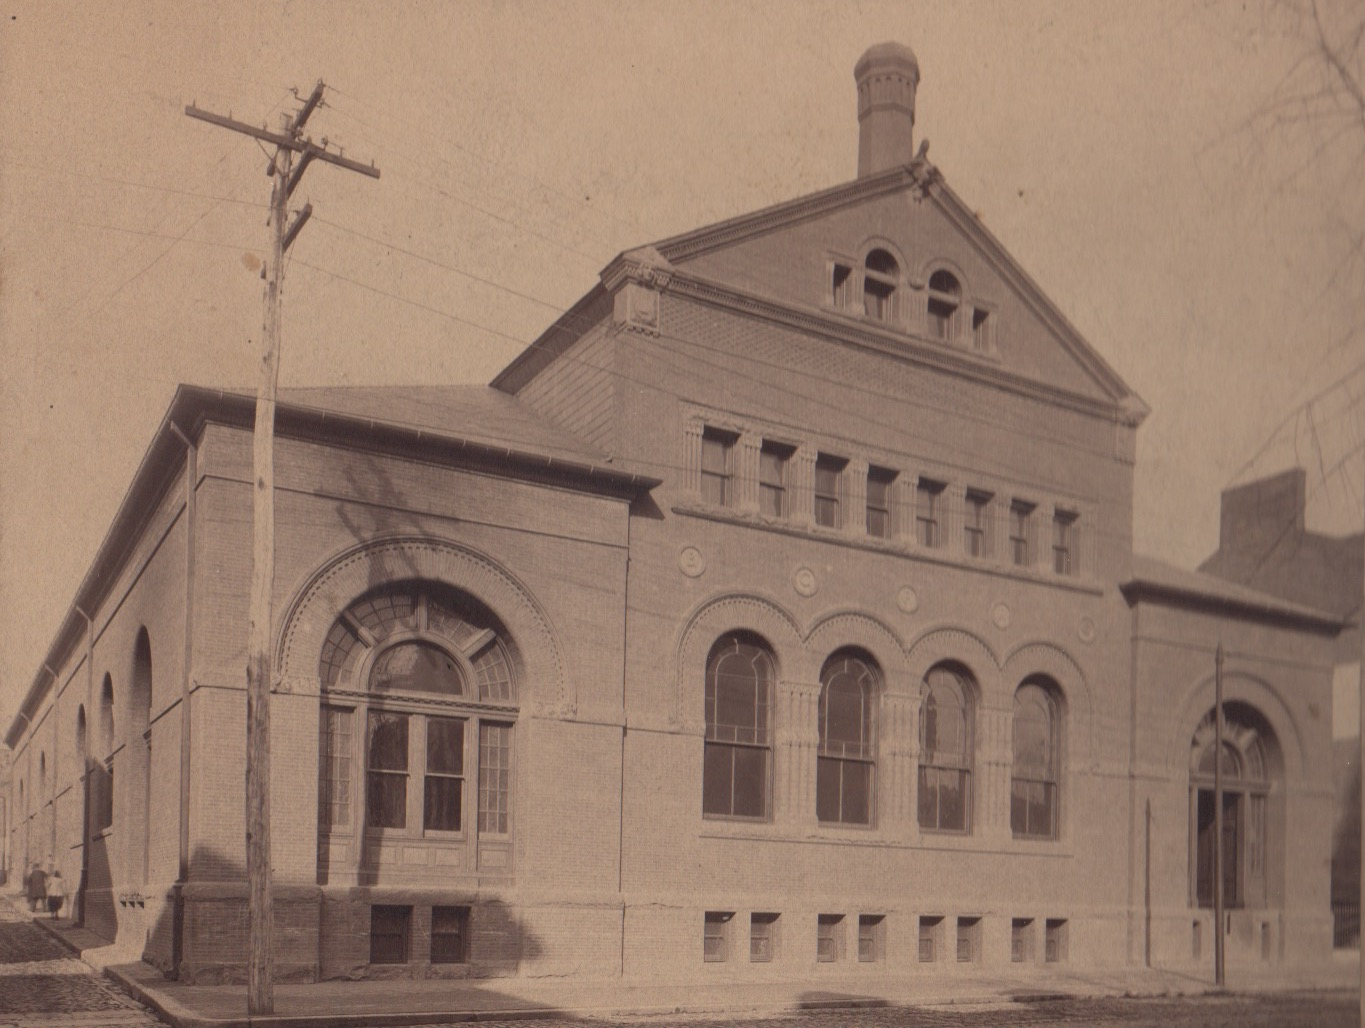 Image Credit: BSM Archives, Baltimore and East Street Cable Power House, 1893